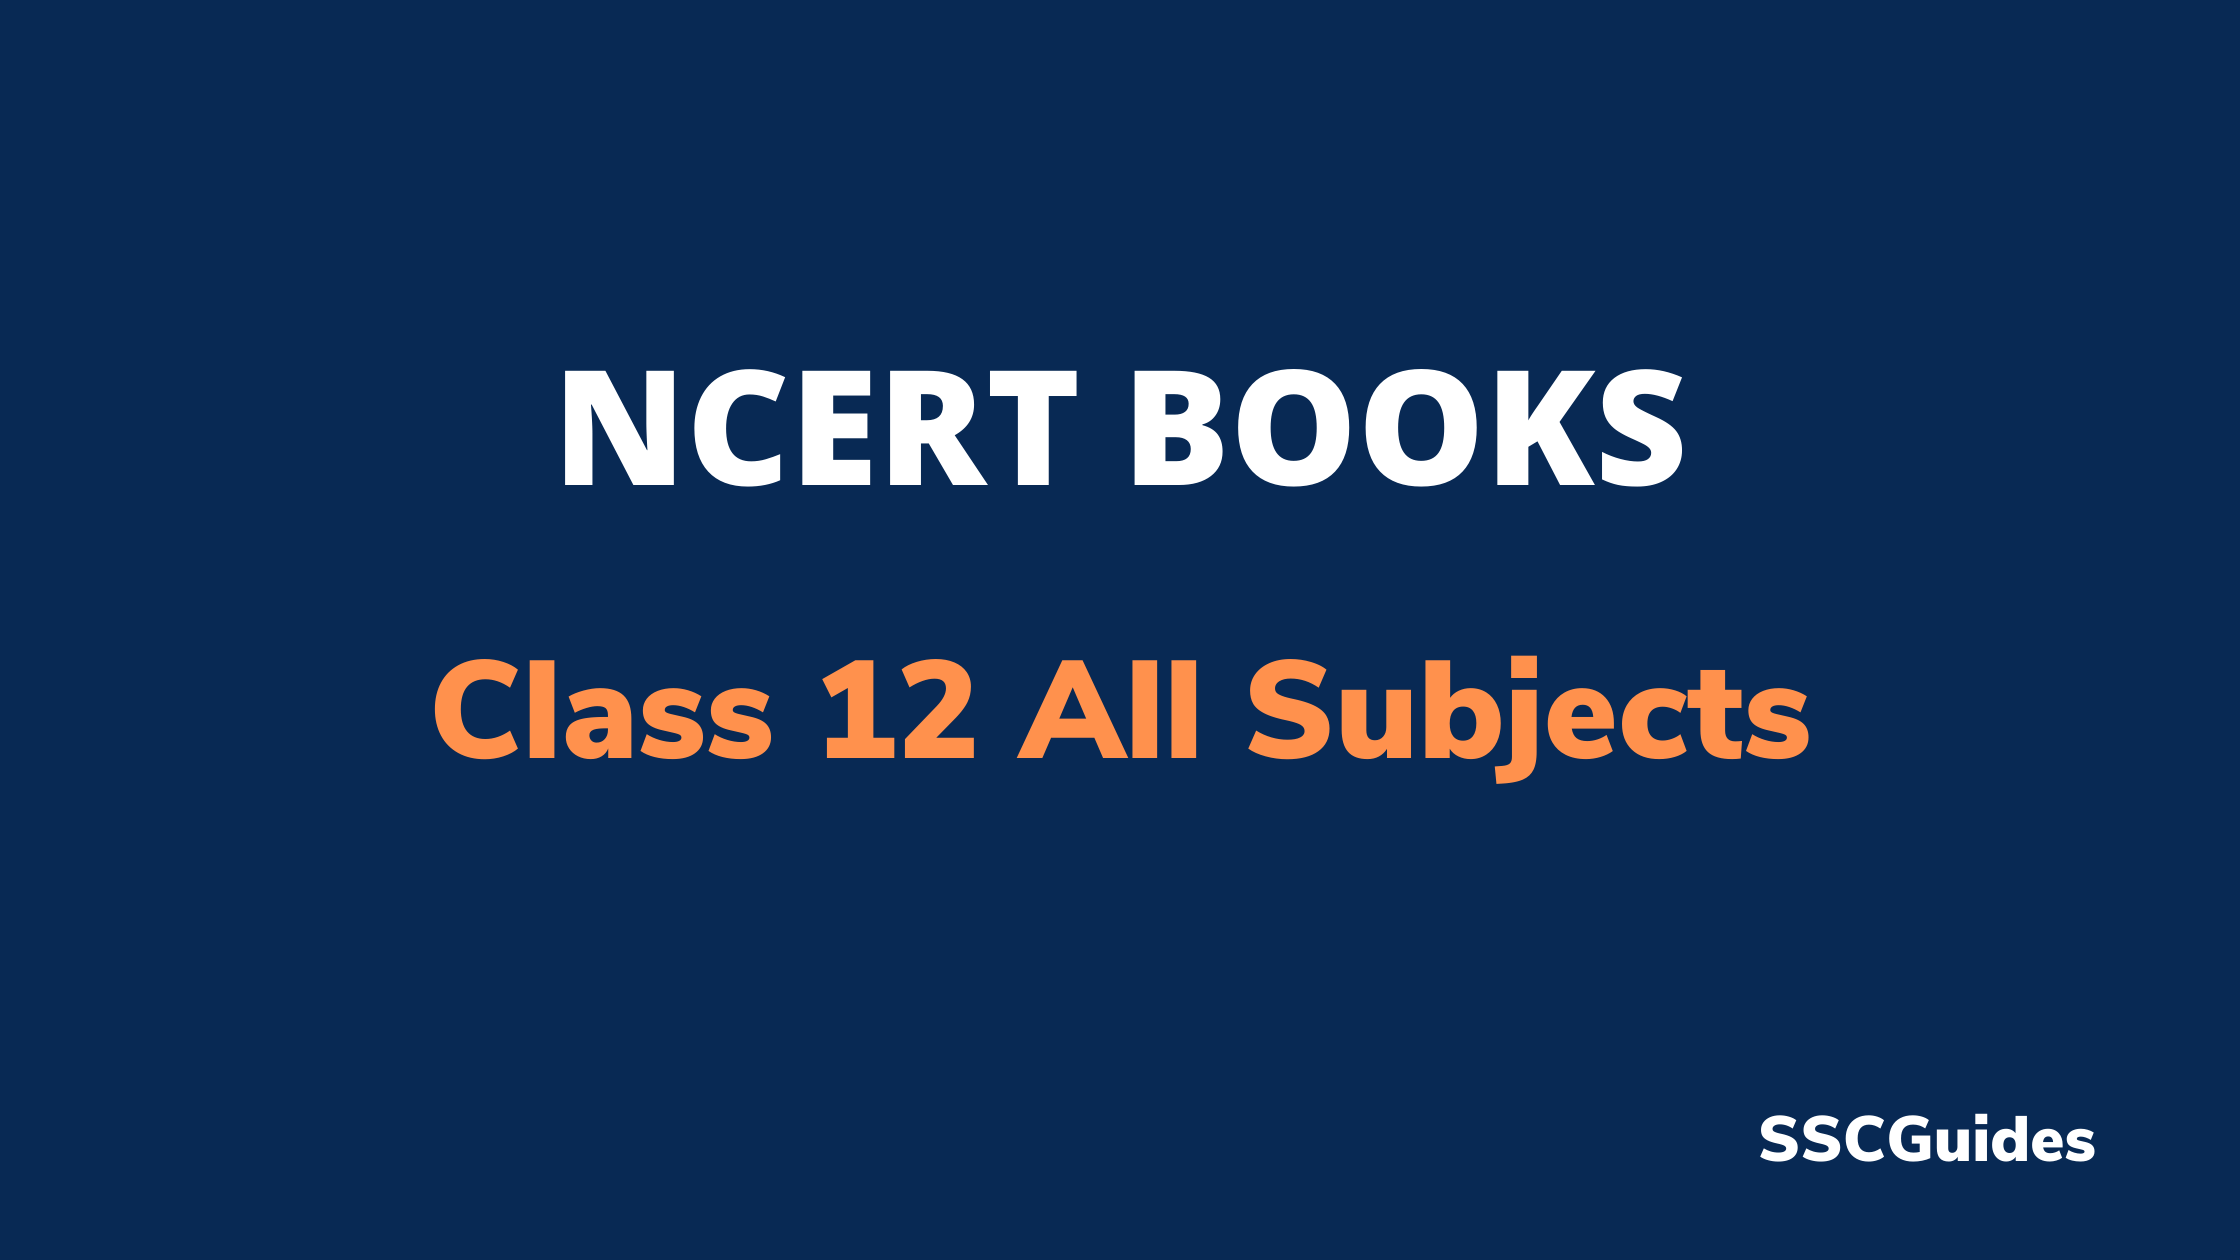 NCERT Books For Class 12 All Subjects